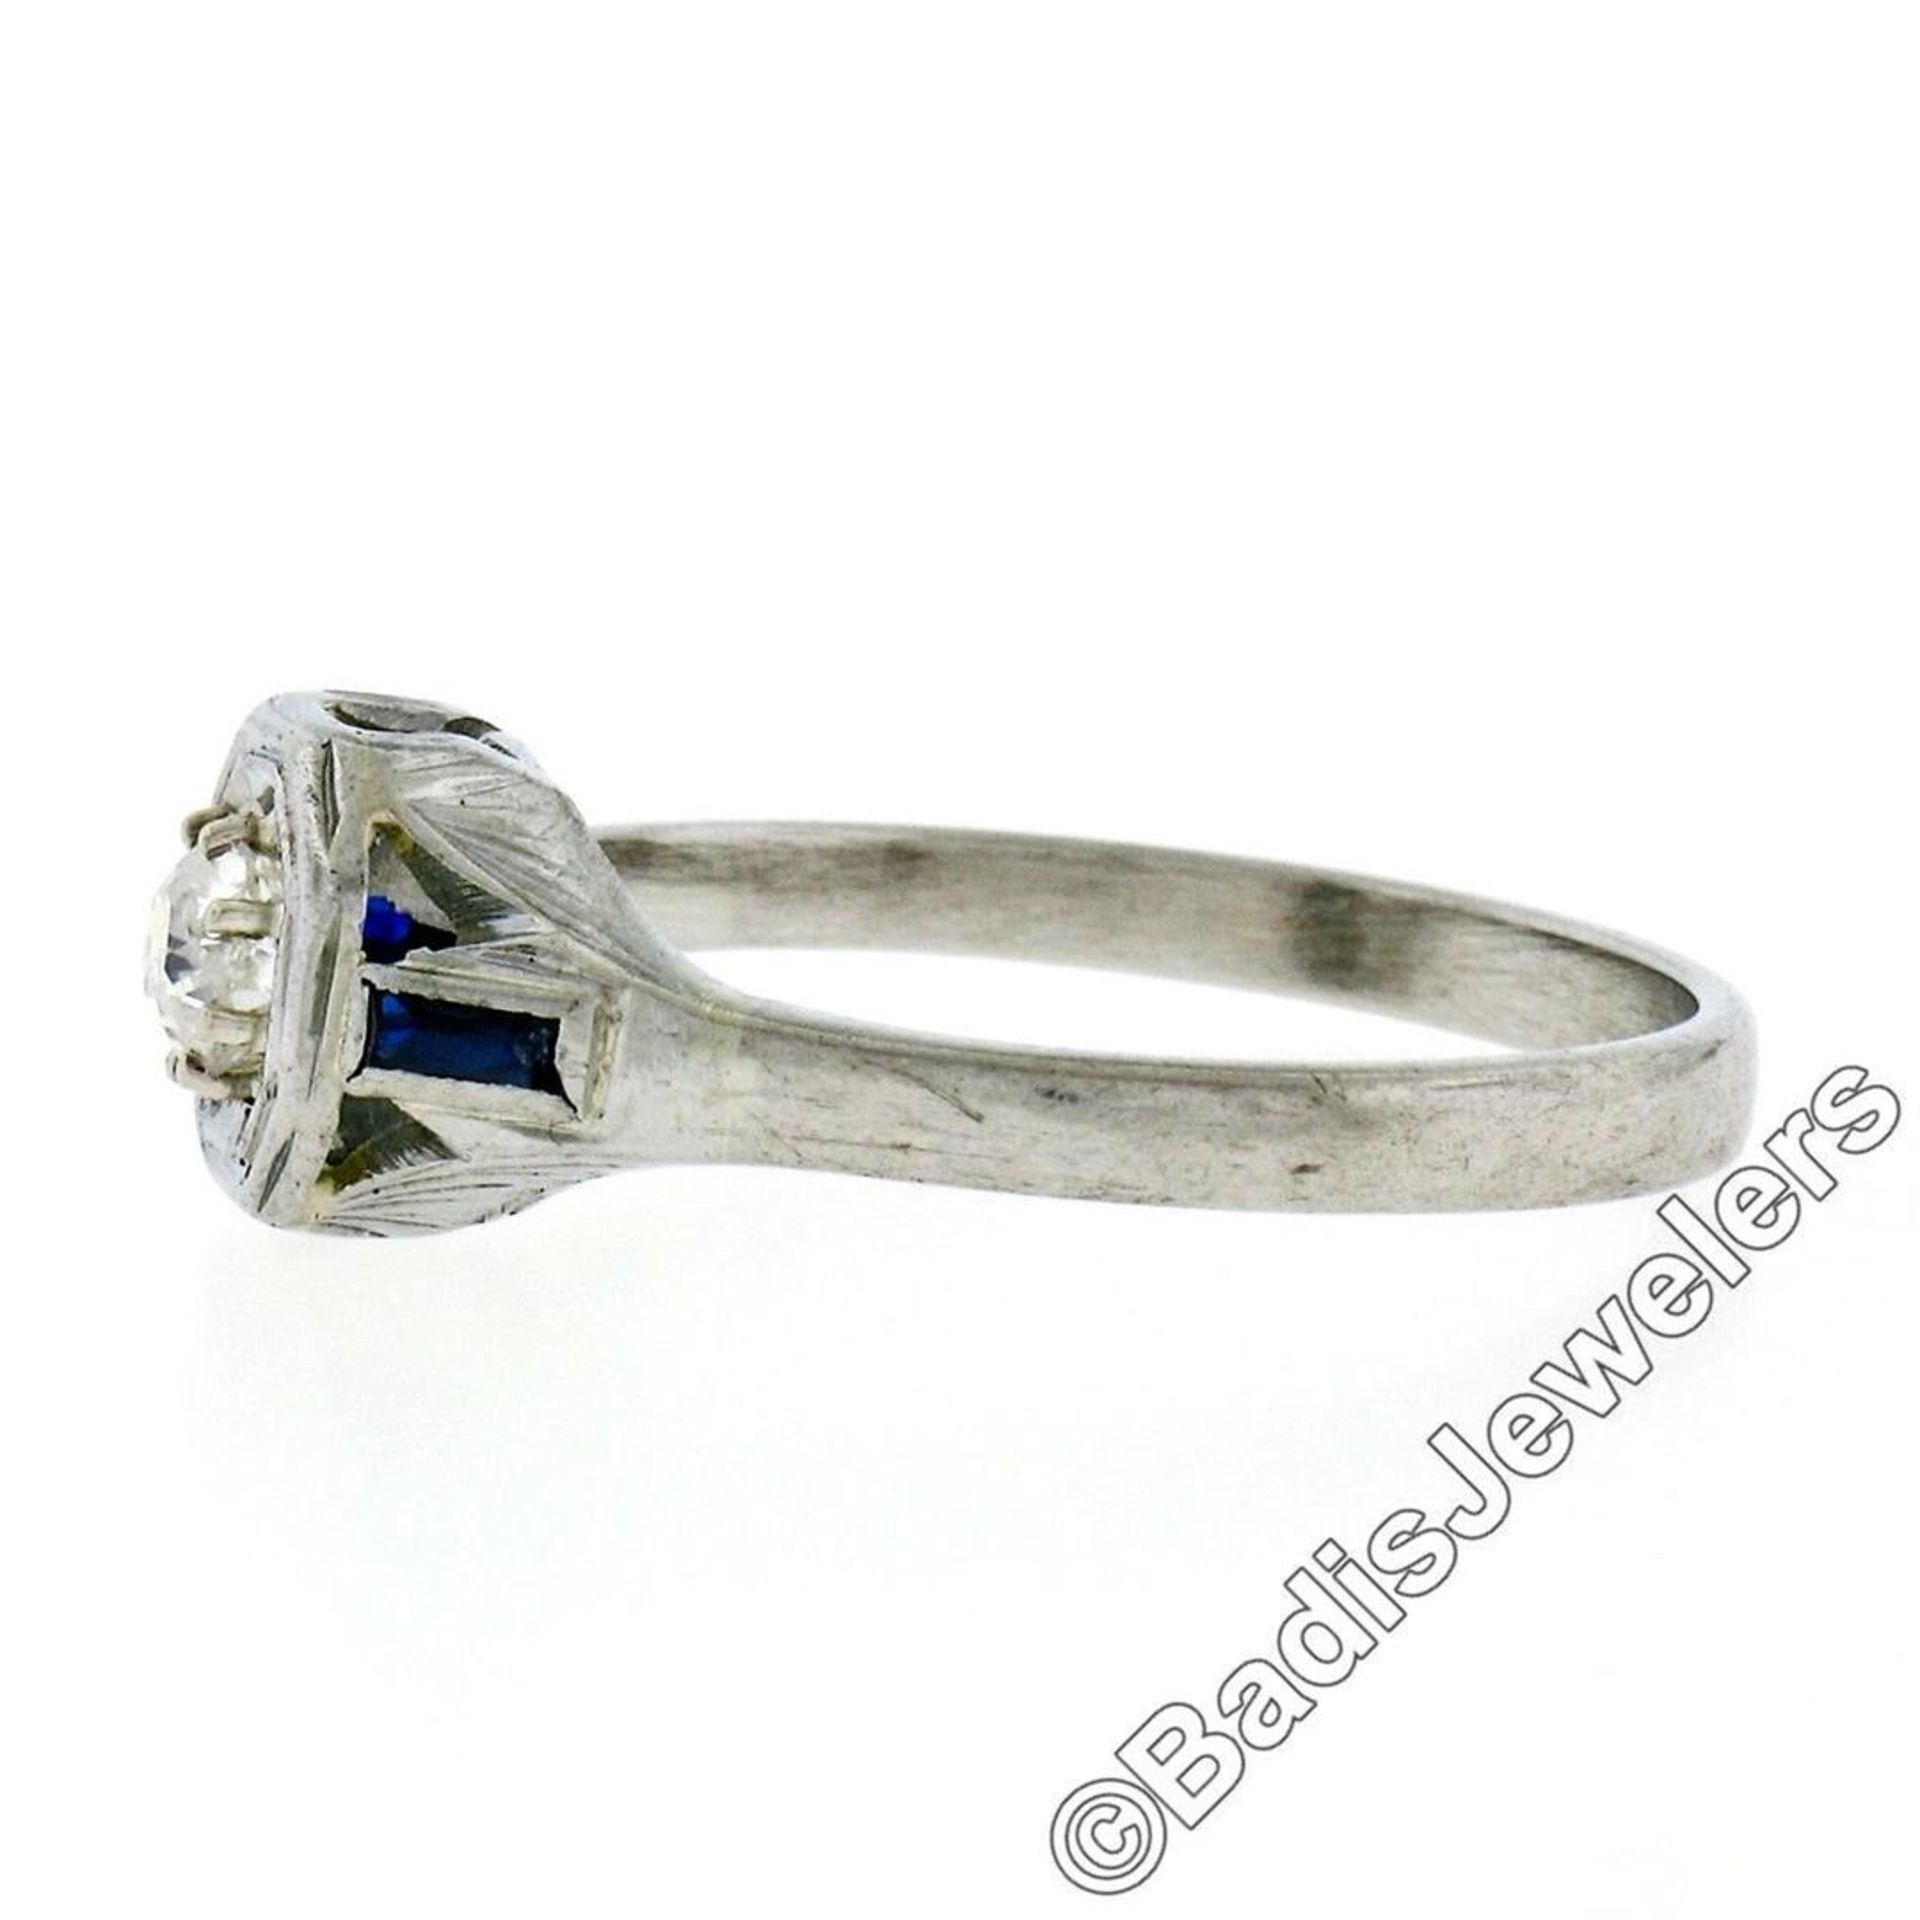 Art Deco 14kt White Gold 0.28ct Diamond Solitaire Engagement Ring - Image 6 of 7